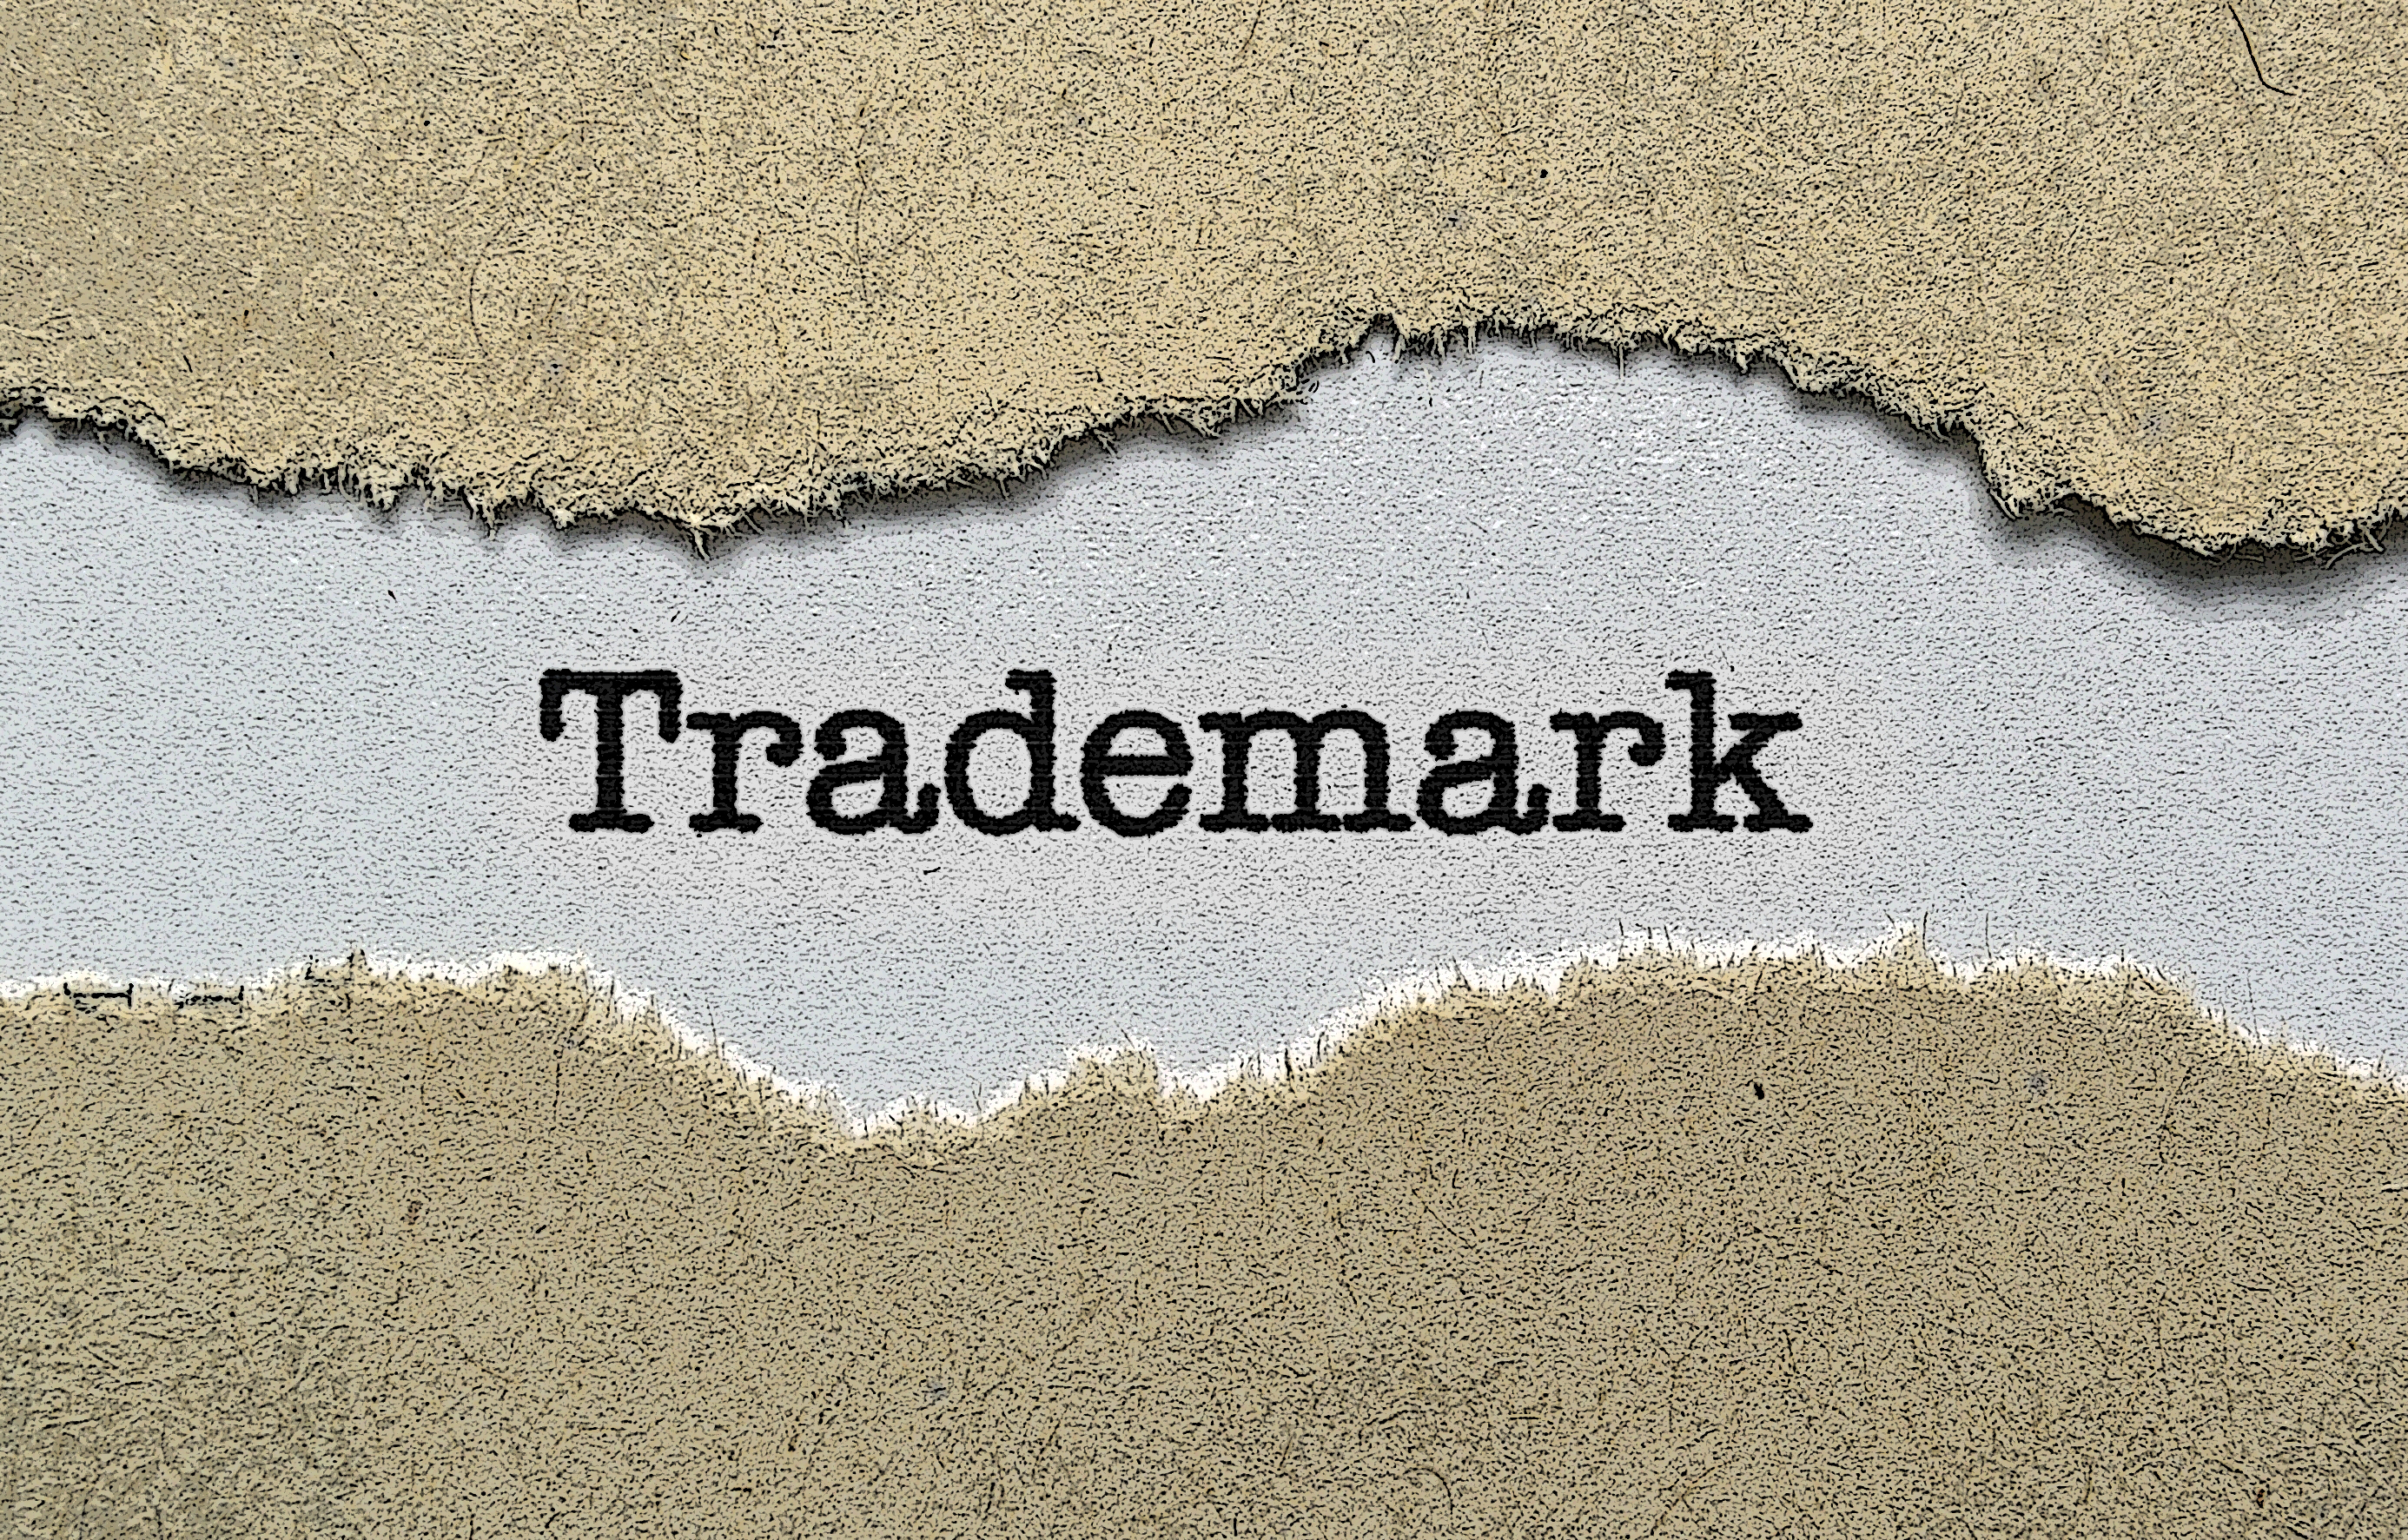 How to Deal With Trade Mark Infringement?